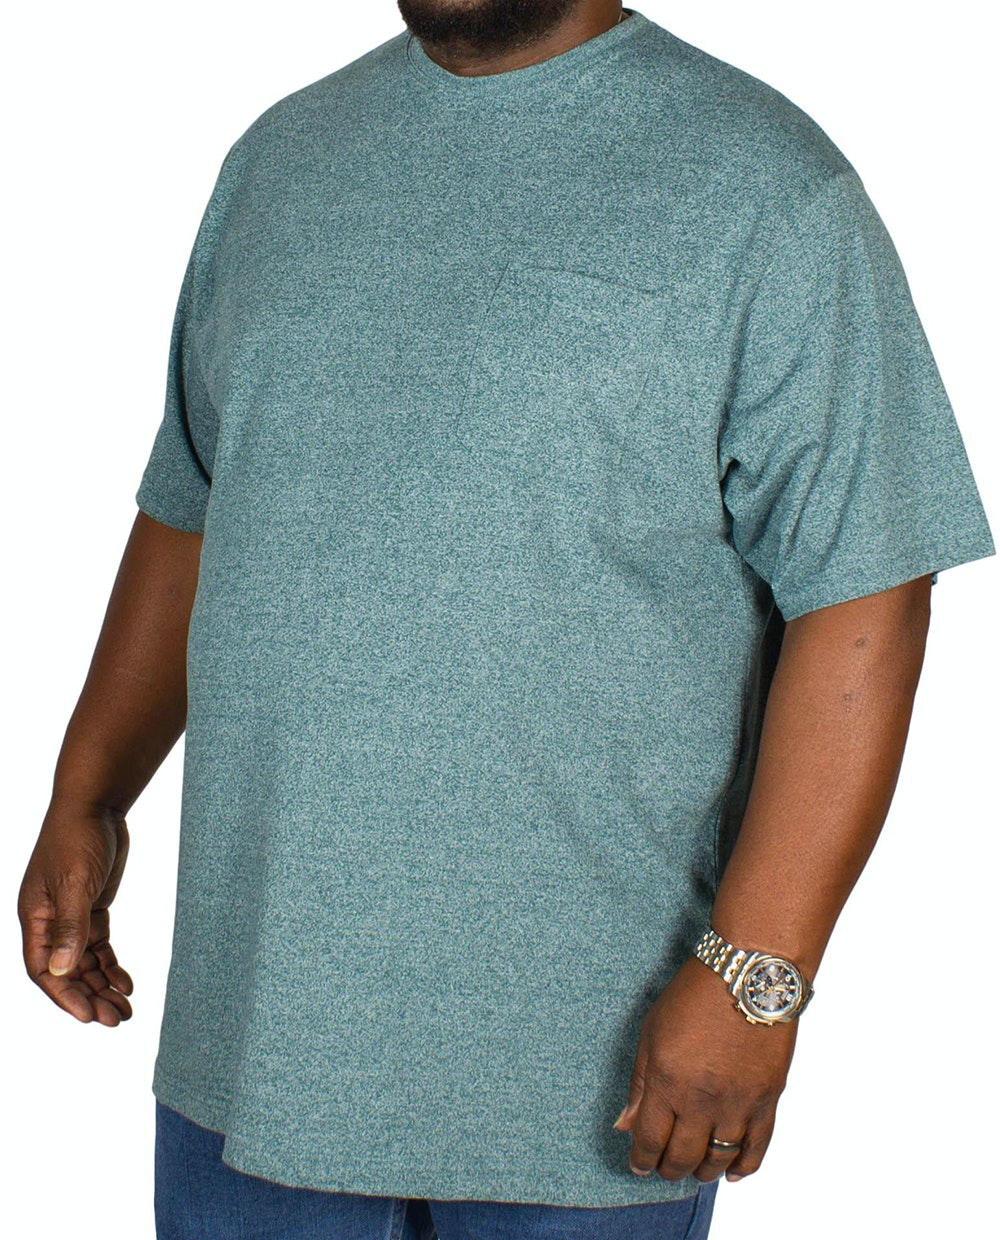 Espionage Jersey Marl T-shirt Teal